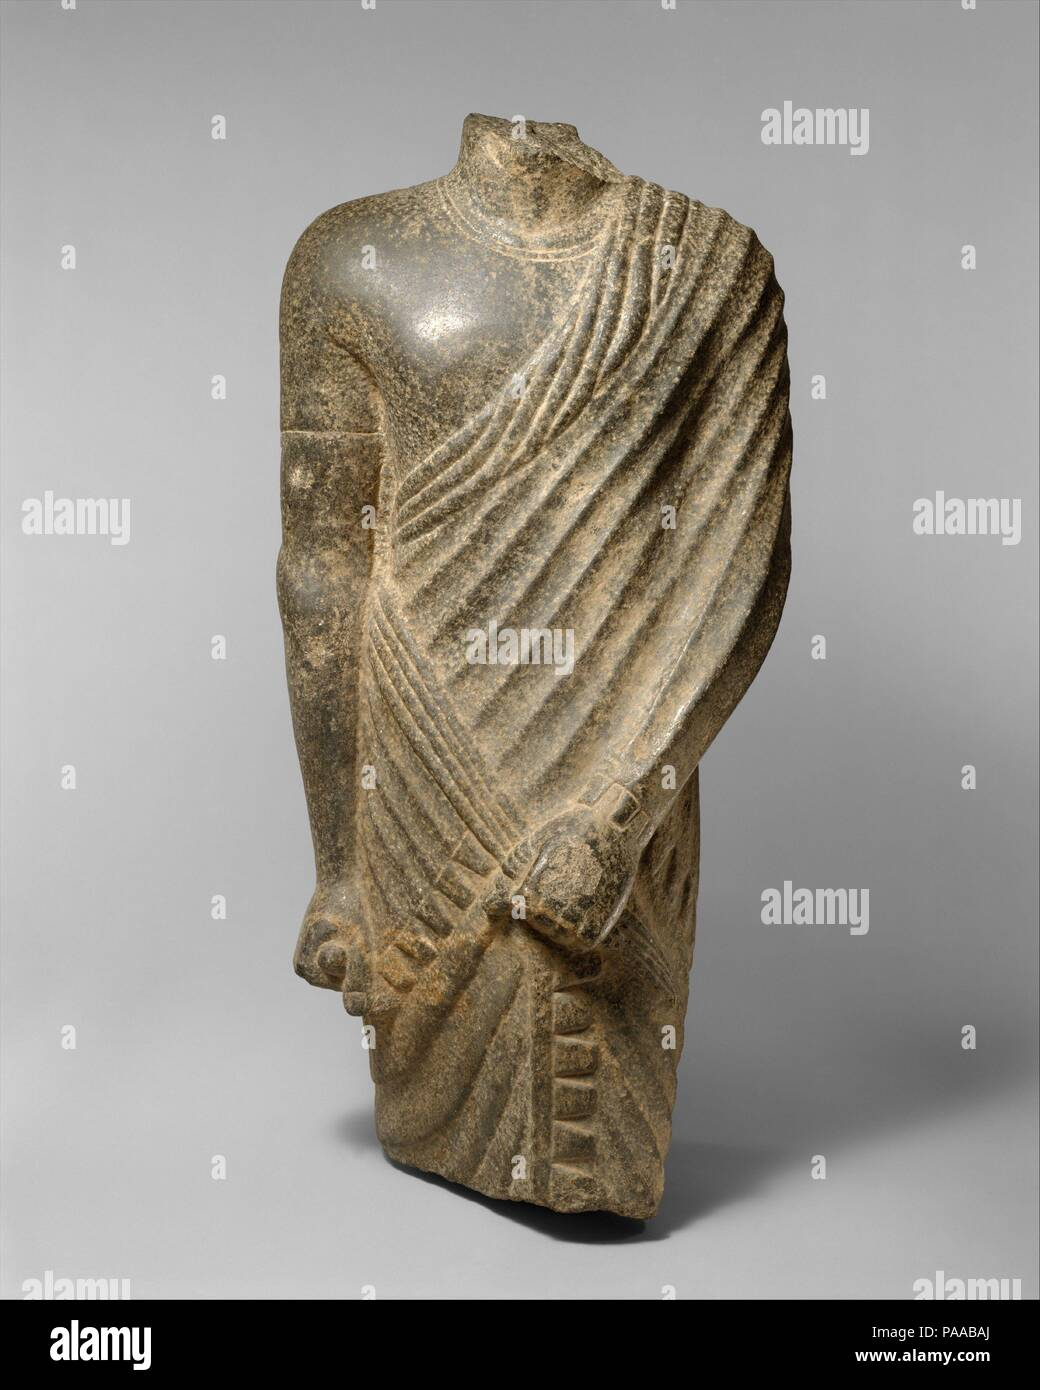 Torso of a Striding Draped Male Figure. Dimensions: H. 85 cm (33 7/16 in). Date: 304 B.C.-A.D. 364.  This statue wears a costume especially popular in the Ptolemaic and early Roman Period: a sleeved tunic over which a long fringed skirt is wrapped, with its front edge visible between the legs of the figure, topped with a fringed shawl.  The shawl covers the left arm and passes under the right, ending where it is gathered into the proper left fist. The sculptor has given special attention to the graceful ridges and hollows of the draped garment and to the fine anatomical modeling of the neck an - Stock Image